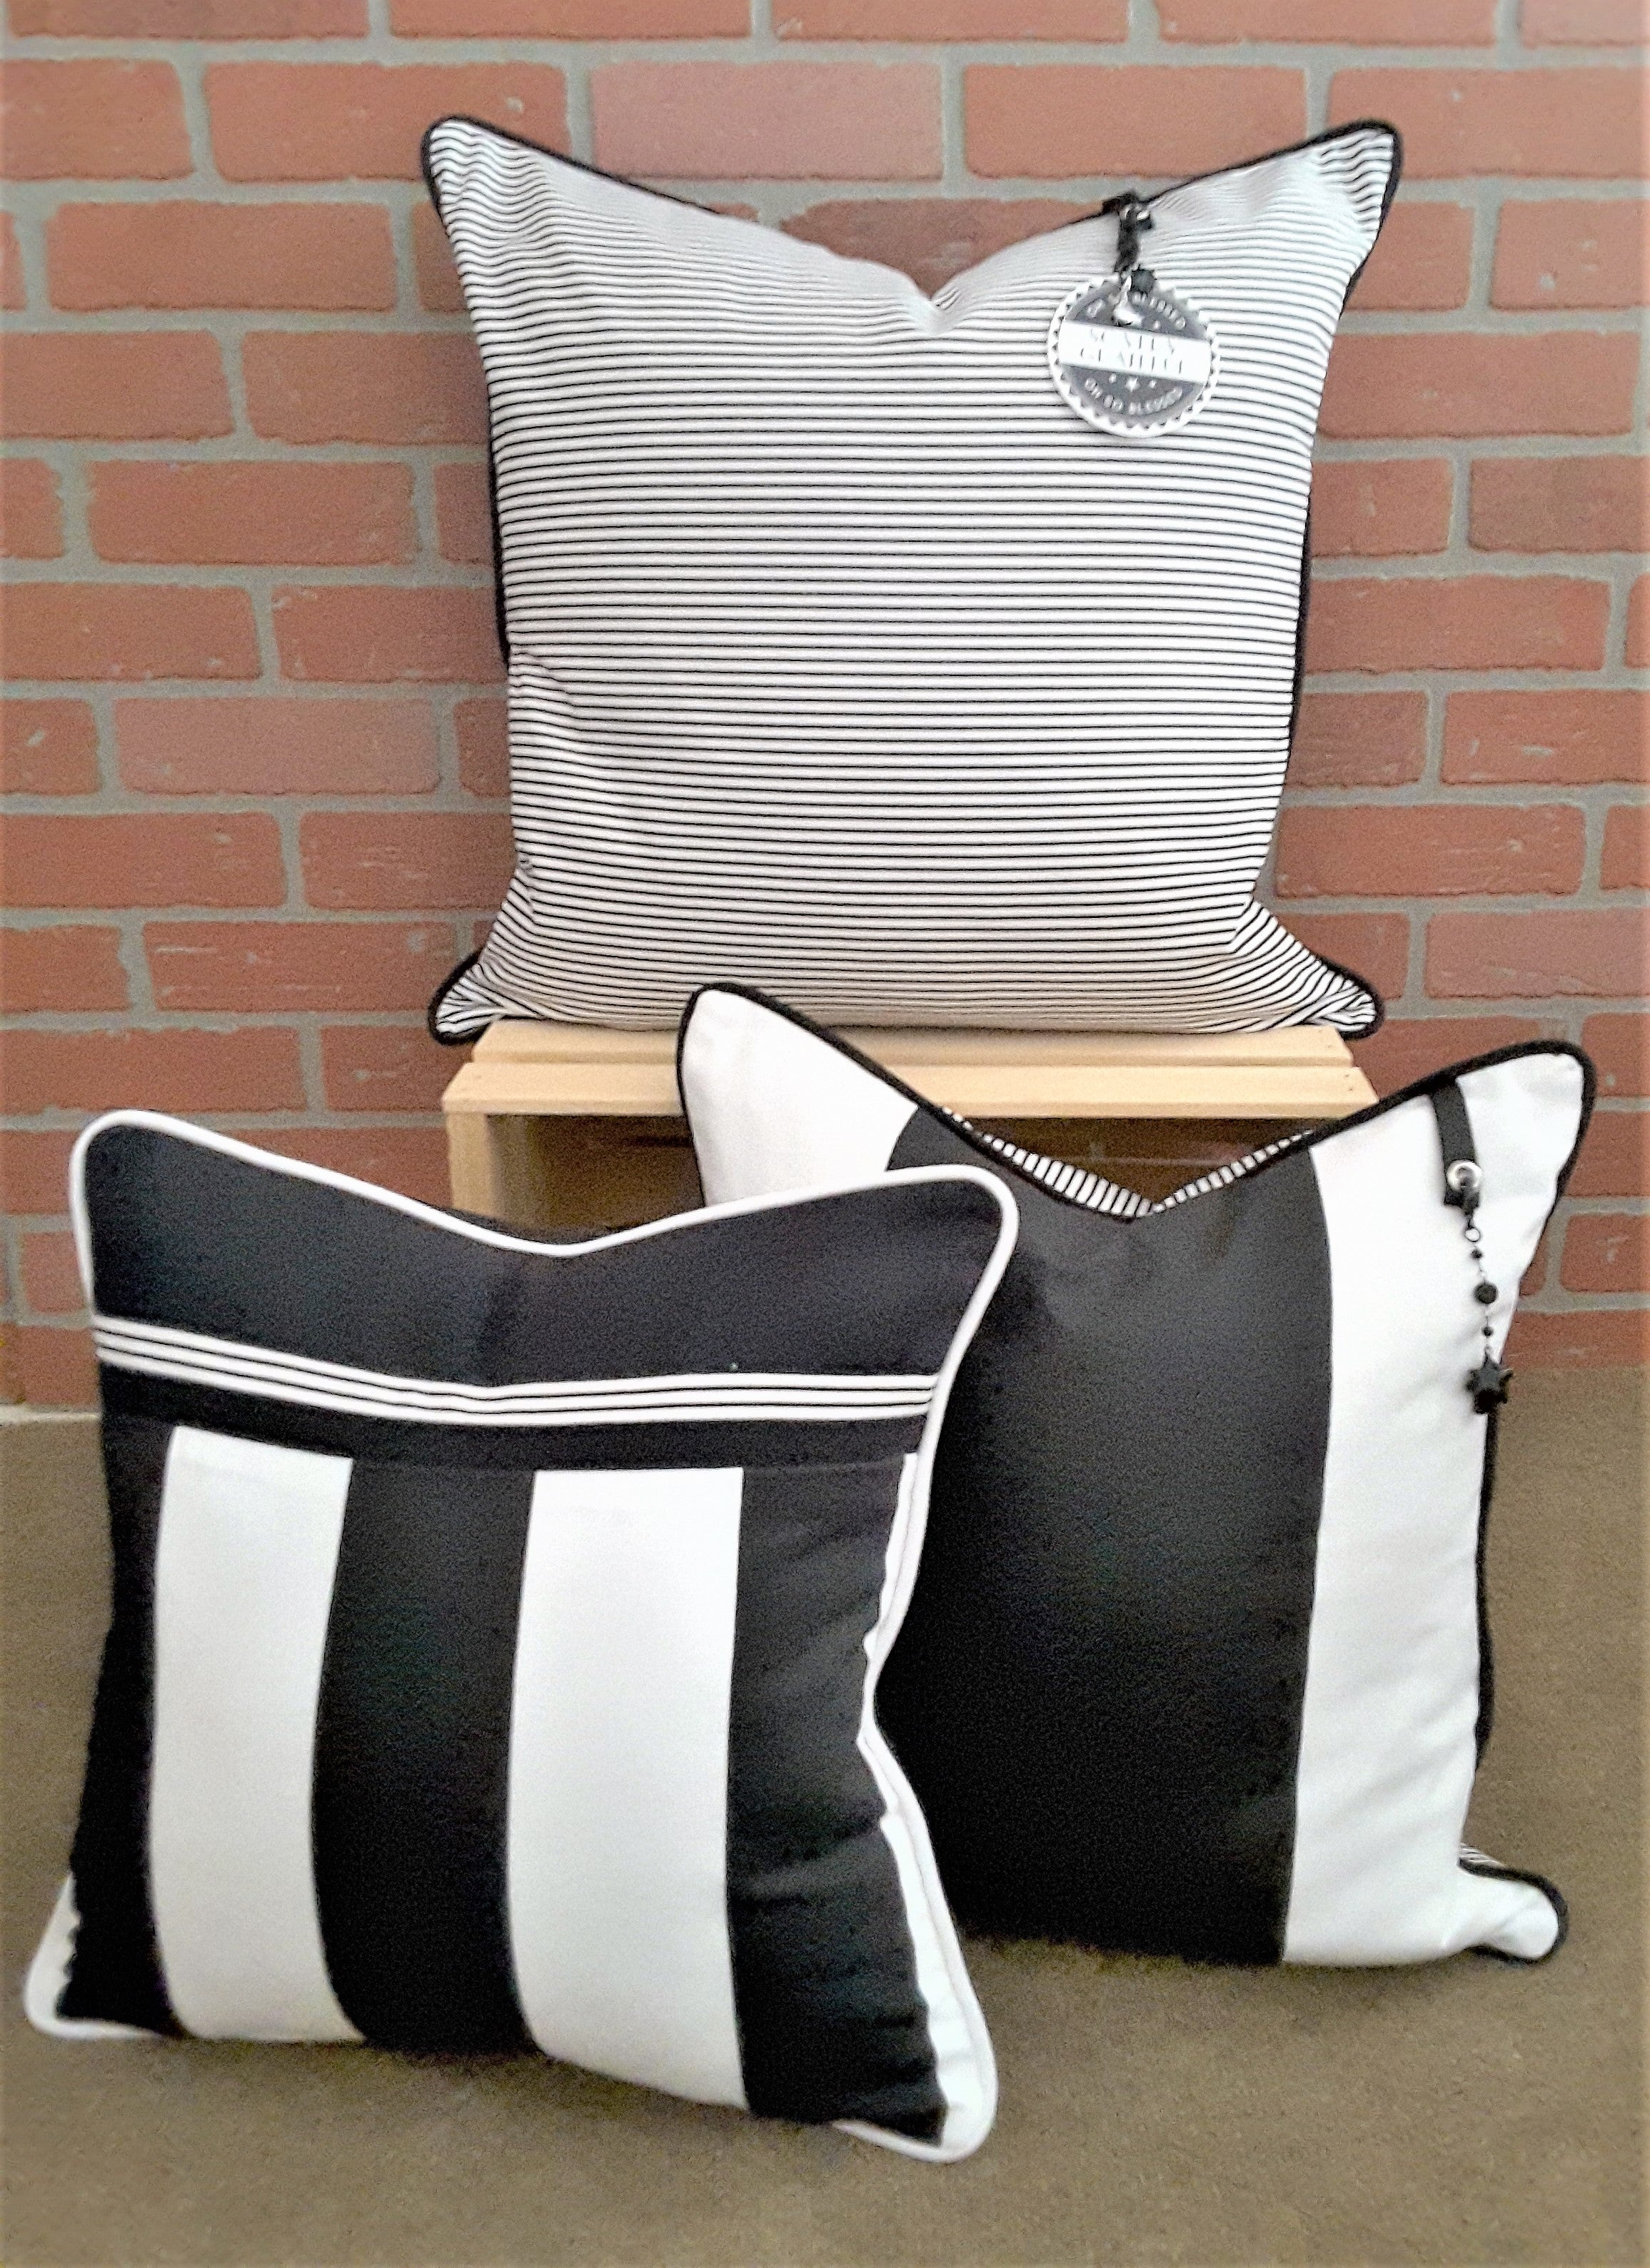 BLACK & WHITE STRIPE PILLOW COLLECTION BY ALEXANNDRA CARINGTON